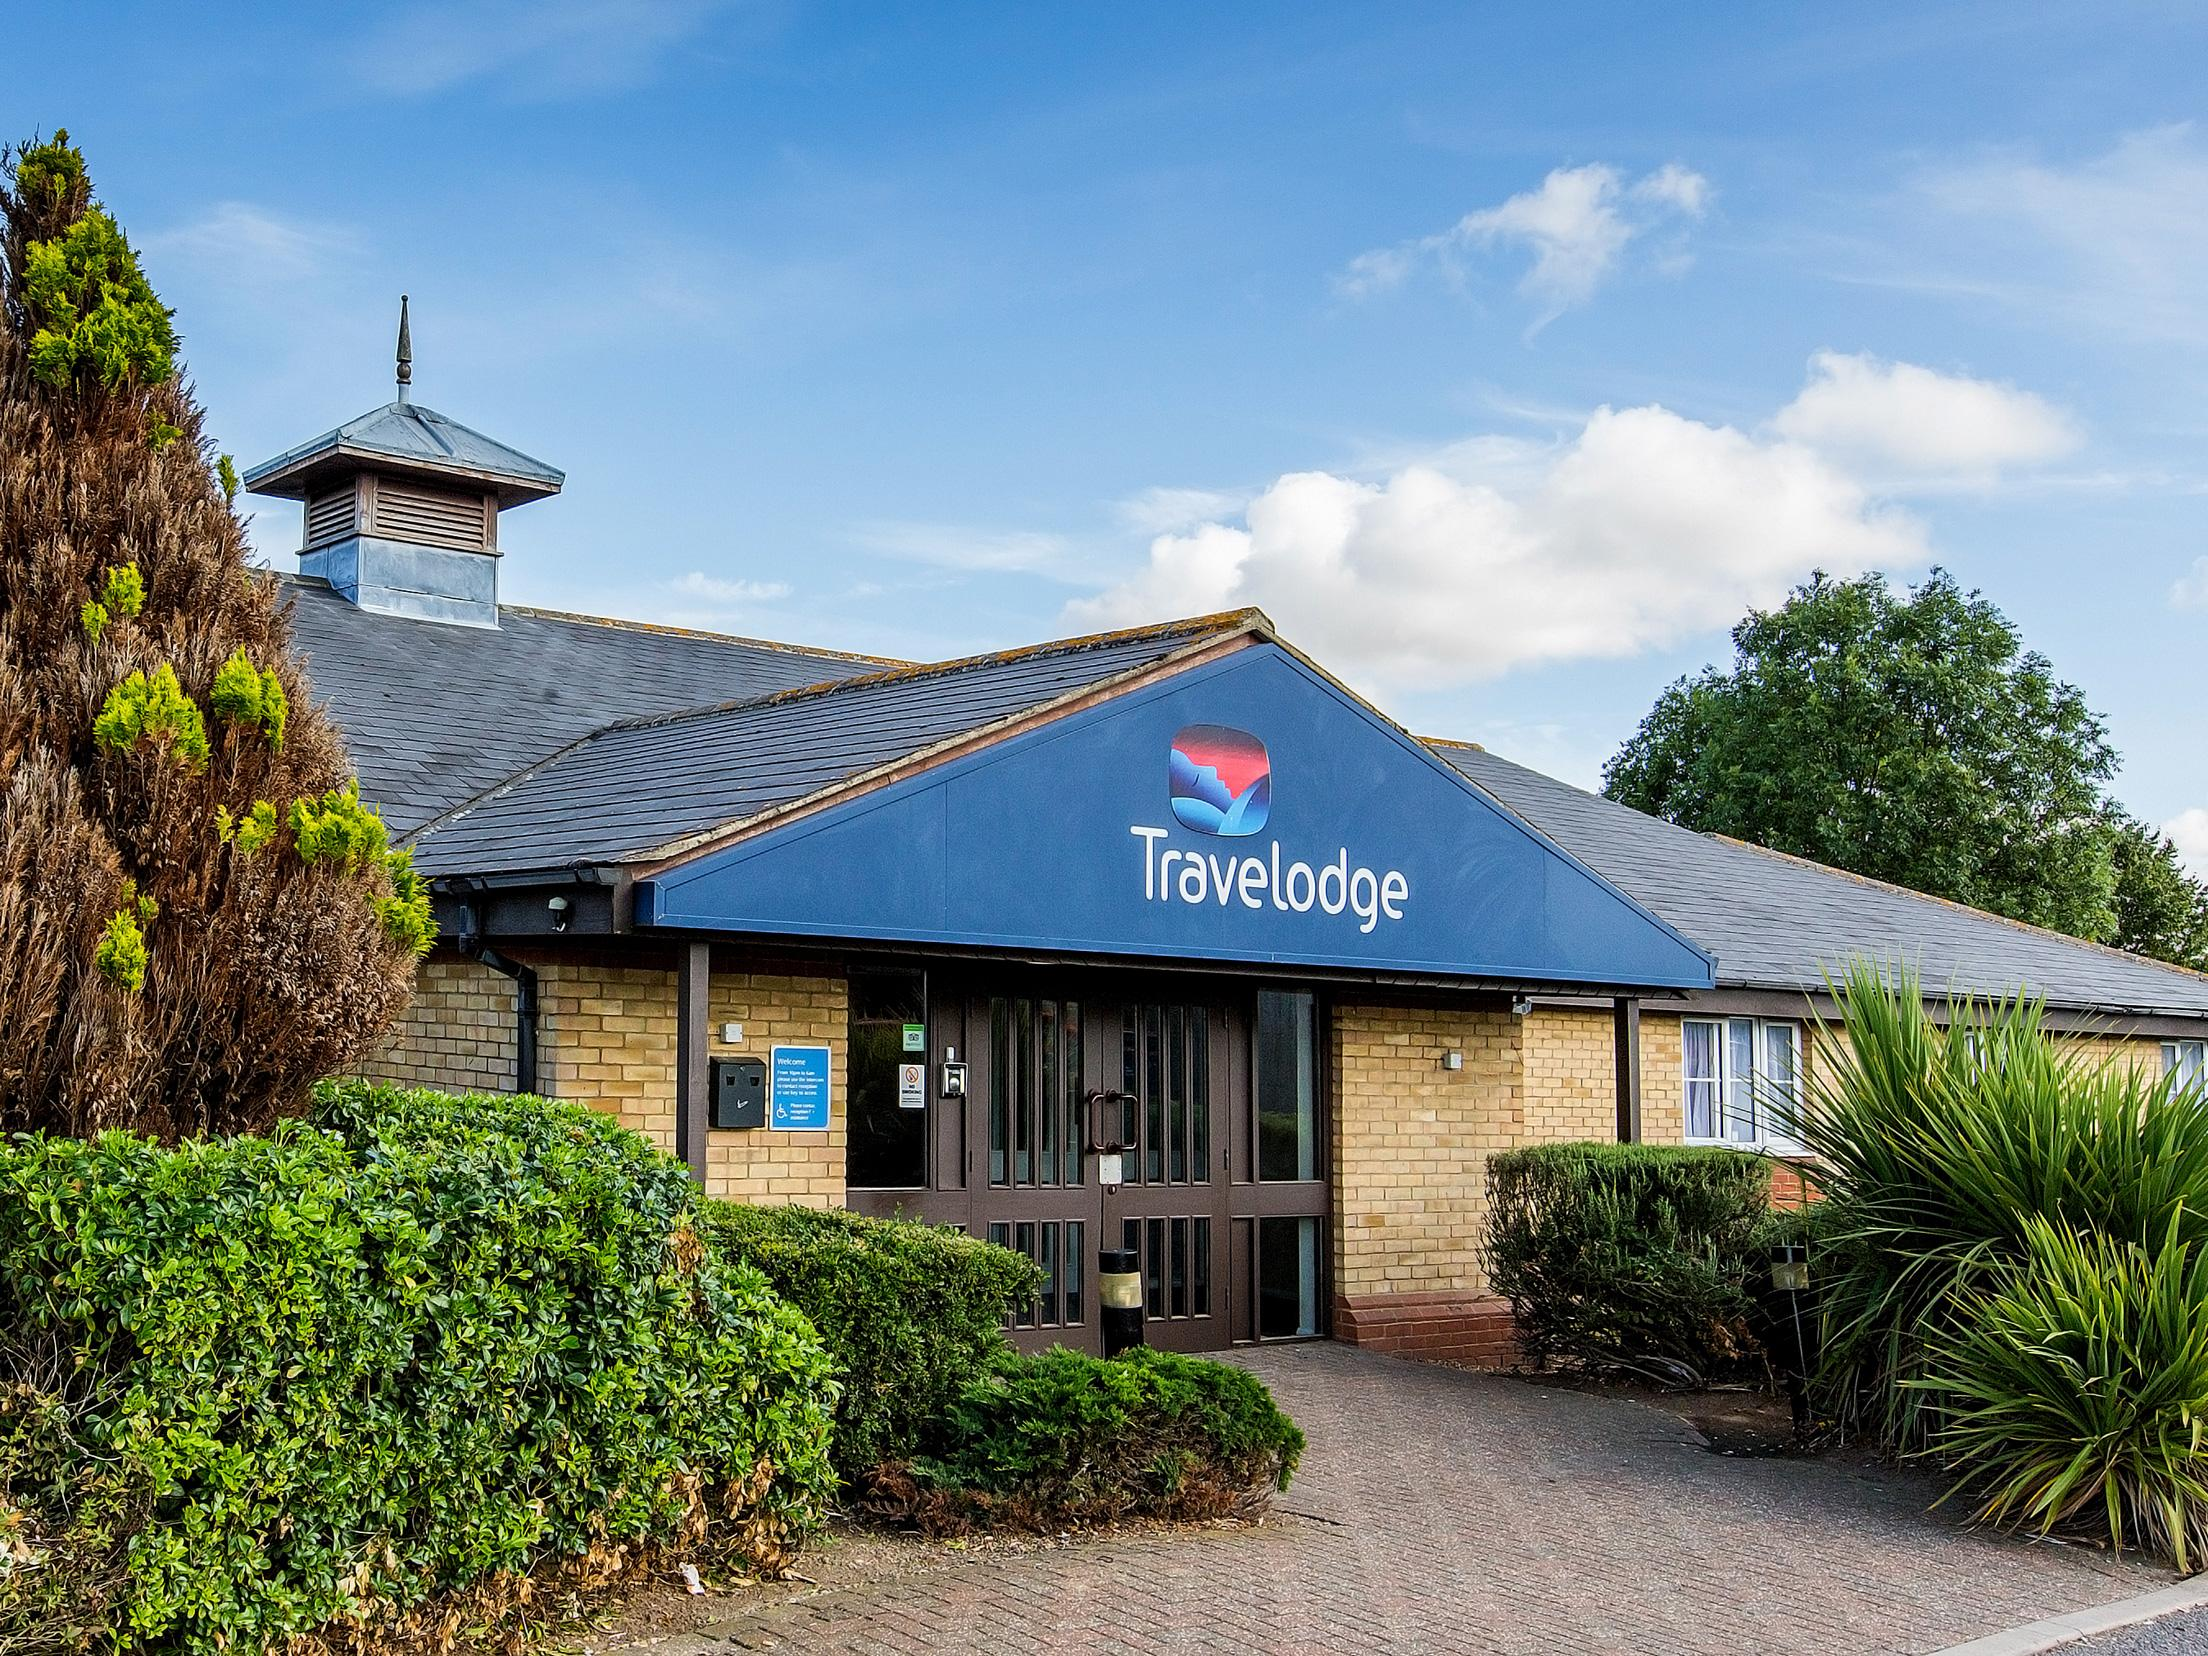 Travelodge Colchester Feering, Essex